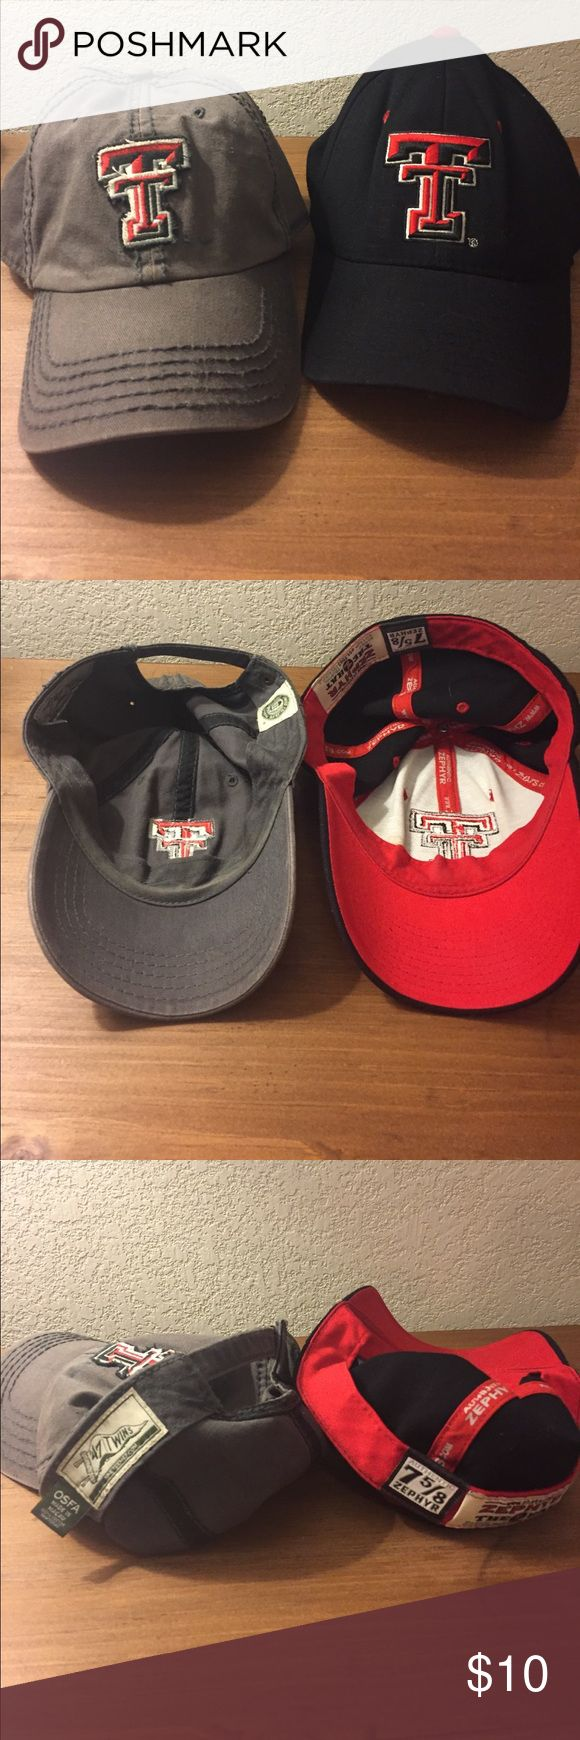 Pair of Texas Tech baseball caps This post is mainly for the black Zephyr hat on the right, because the grey one has a small stain. I still wore it several times. It's not noticeable. Anyway, OSFA on the left and 7-5/8 on the right. Wreck em!! Zephyr Accessories Hats